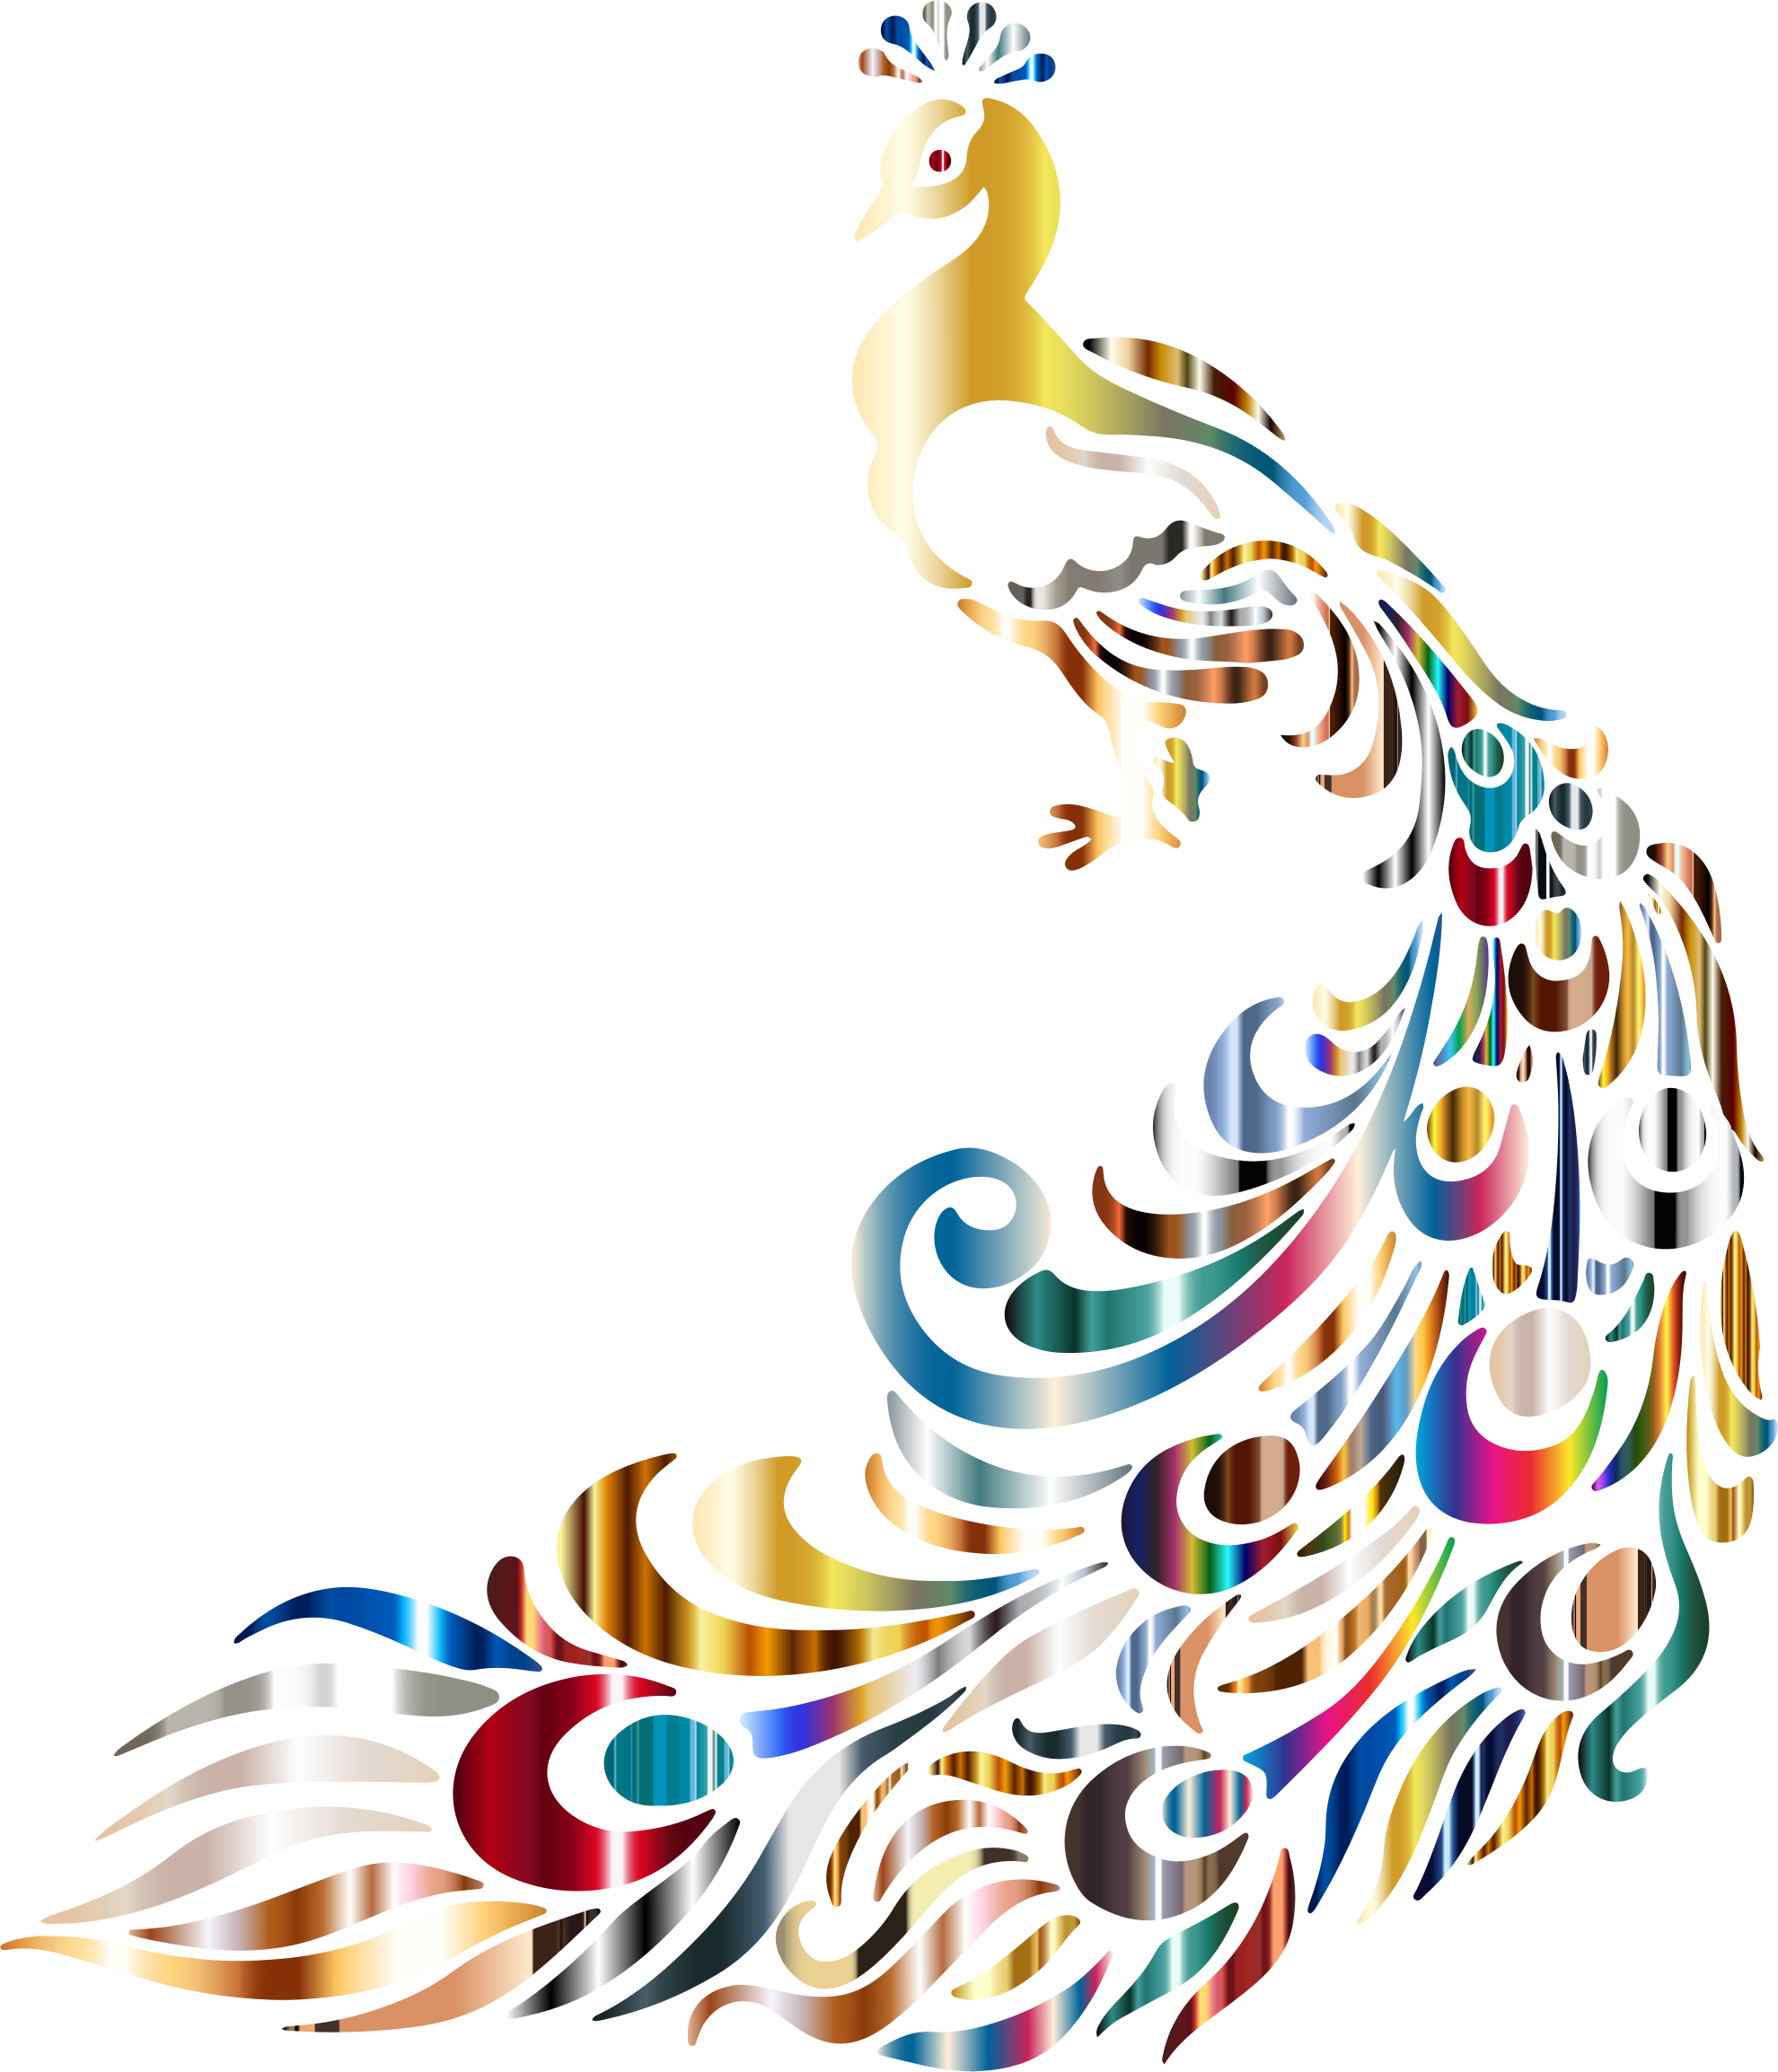 Clipart chromatic peacock 3 no background